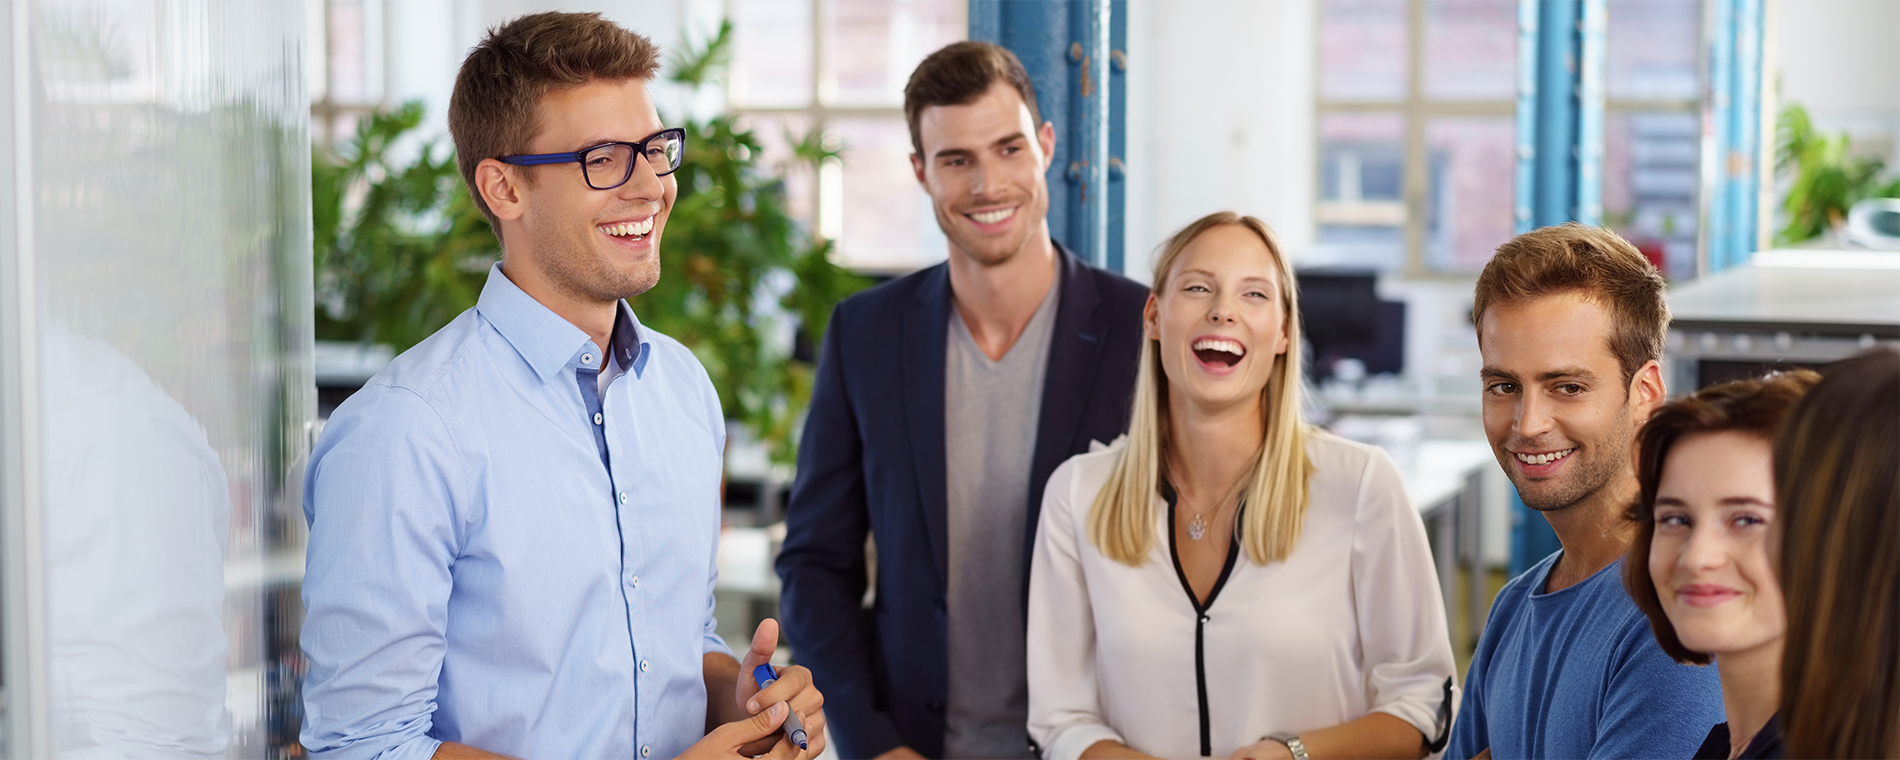 Five people in office attire standing together and laughing